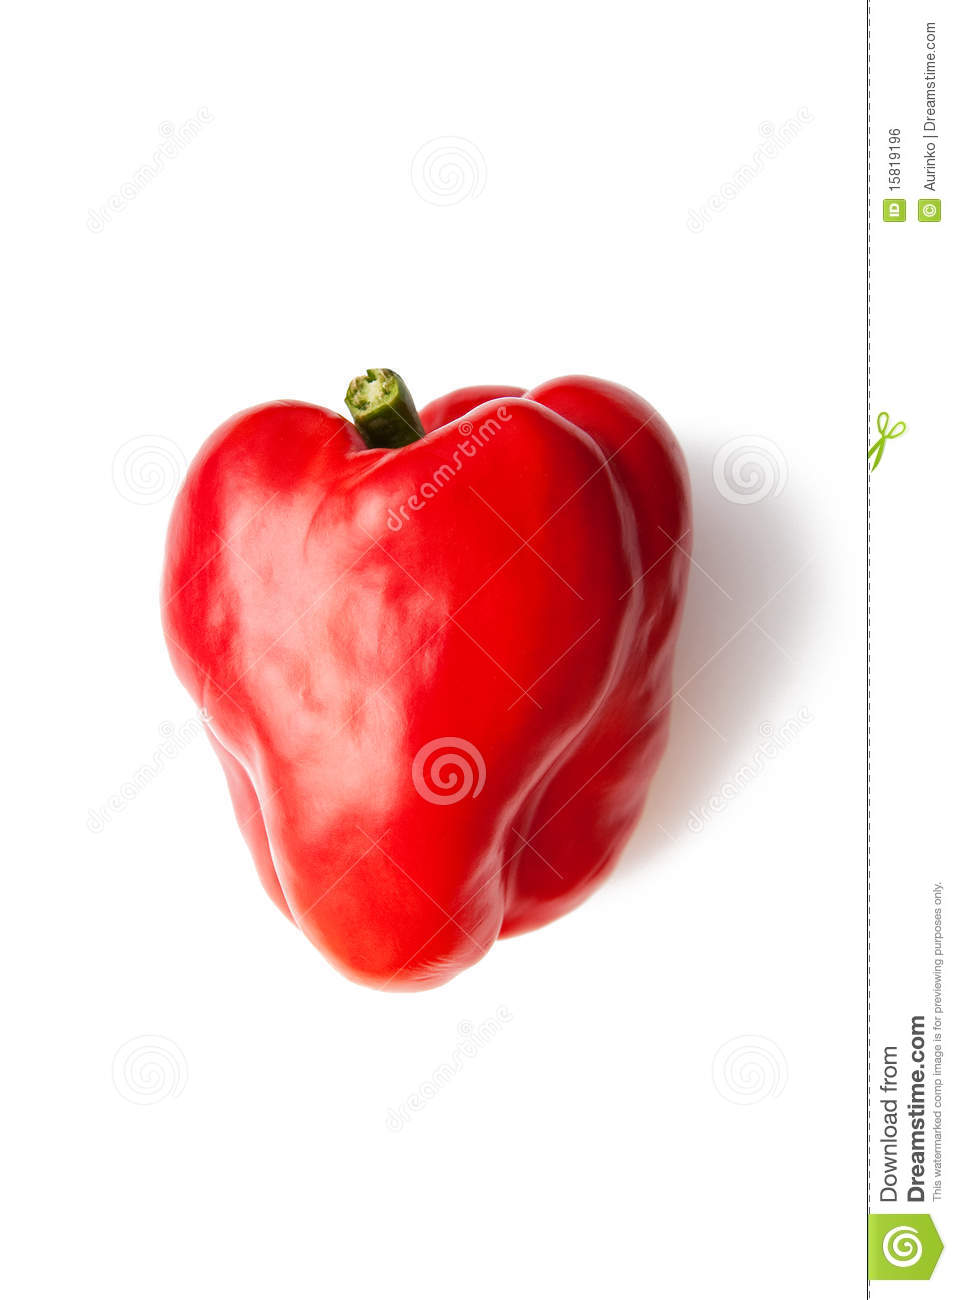 Pepper Royalty Free Stock Image Image 15819196